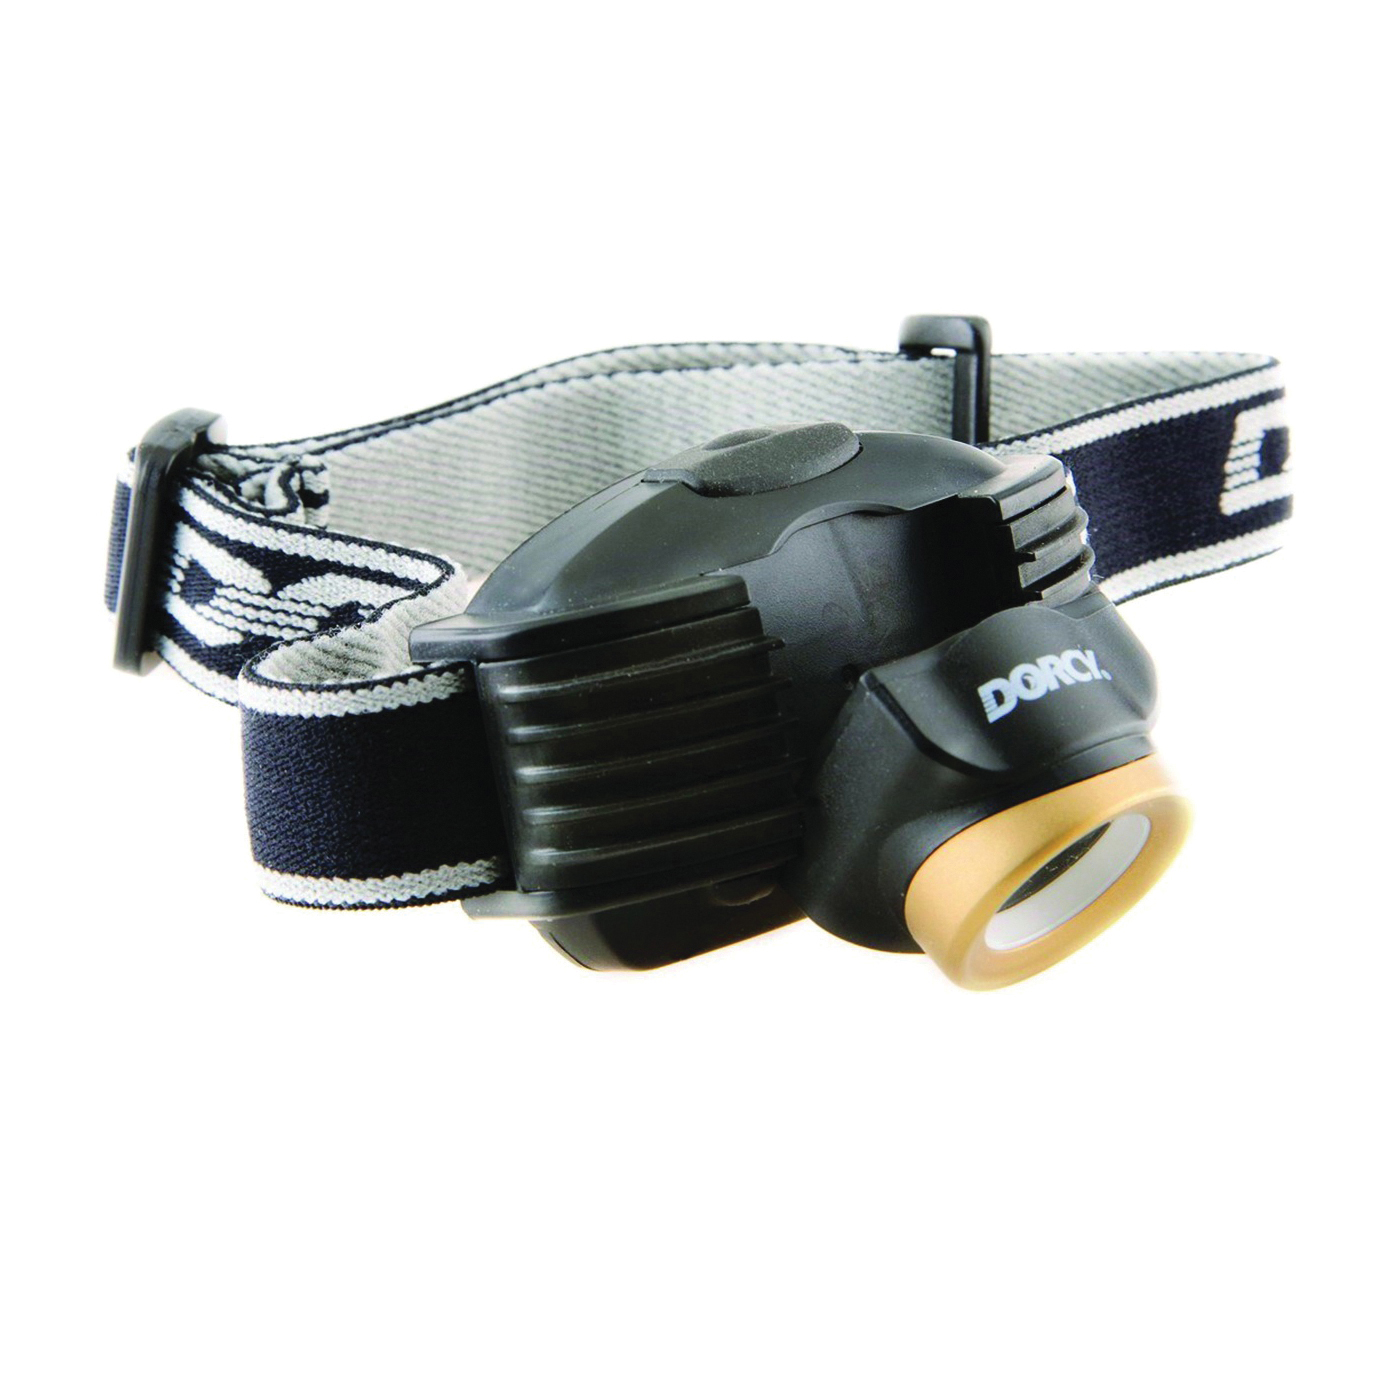 Picture of Dorcy 41-2097 Headlight, AAA Battery, LED Lamp, 214 Lumens, 142 m Beam Distance, 4 hr 15 min Run Time